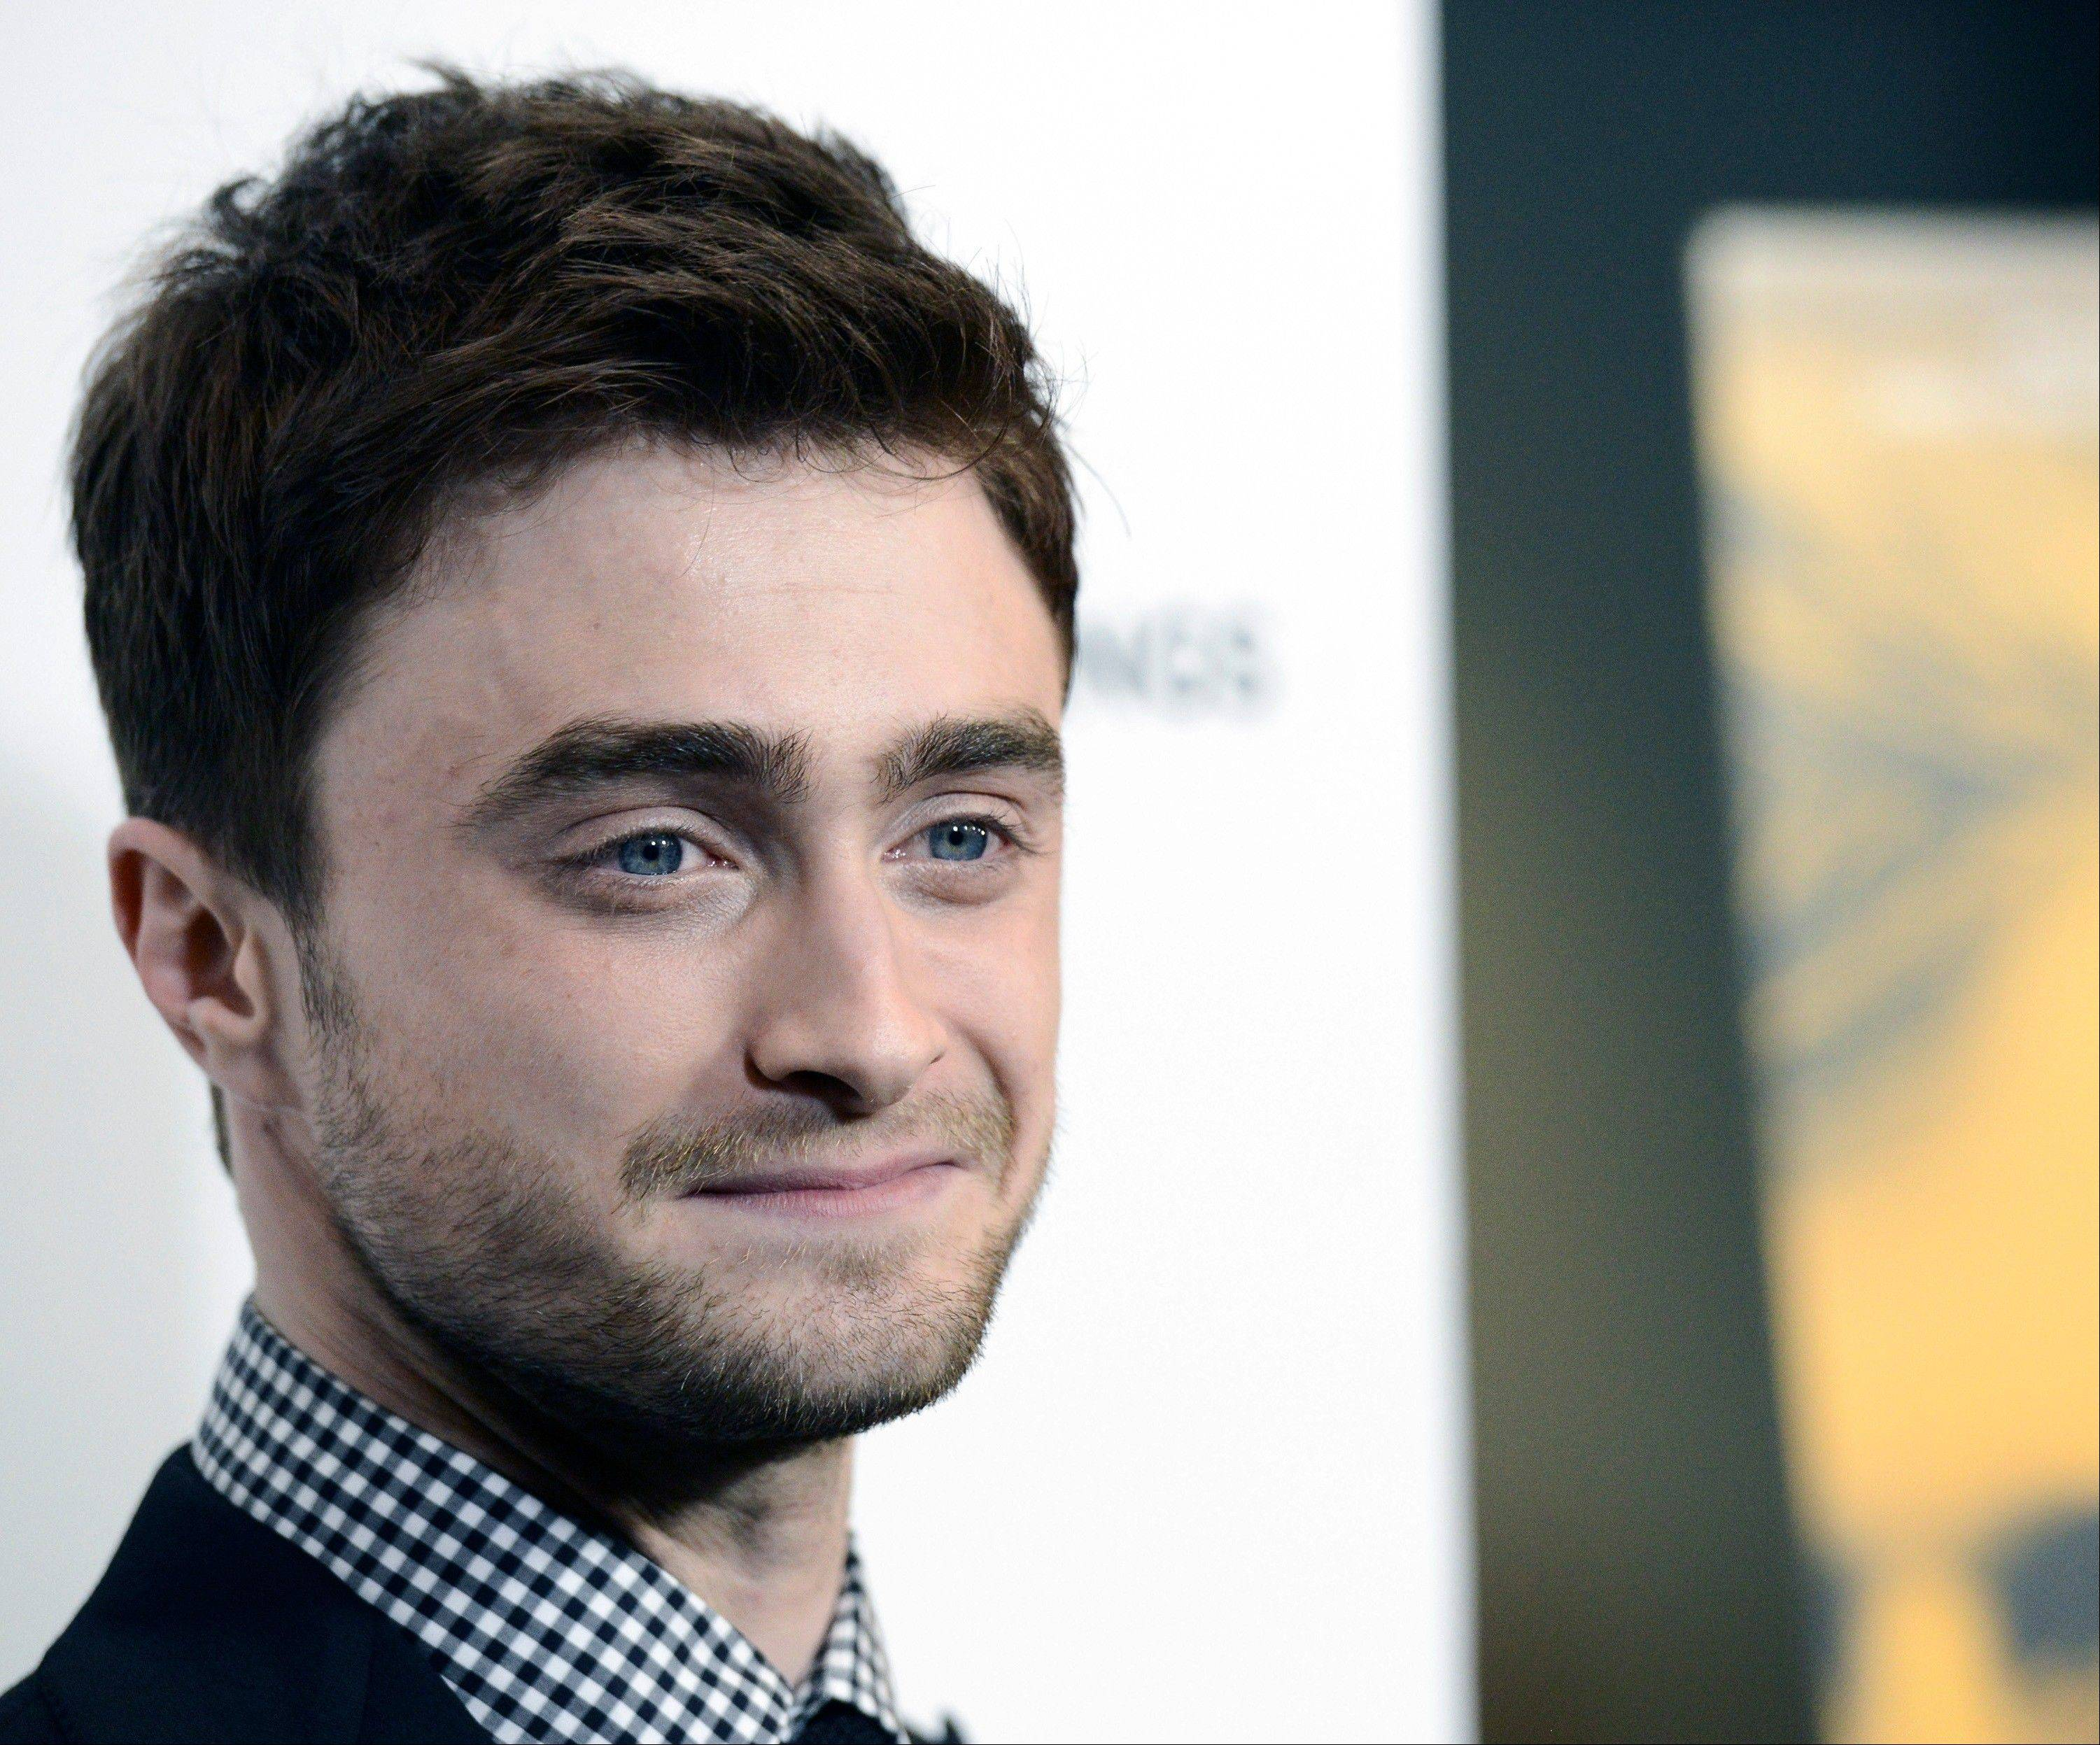 Actor Daniel Radcliffe is returning to Broadway as a disabled Irish dreamer. Producers said Thursday that the �Harry Potter� star will star in Martin McDonagh�s �The Cripple of Inishmaan,� directed by Tony Award-winner Michael Grandage.